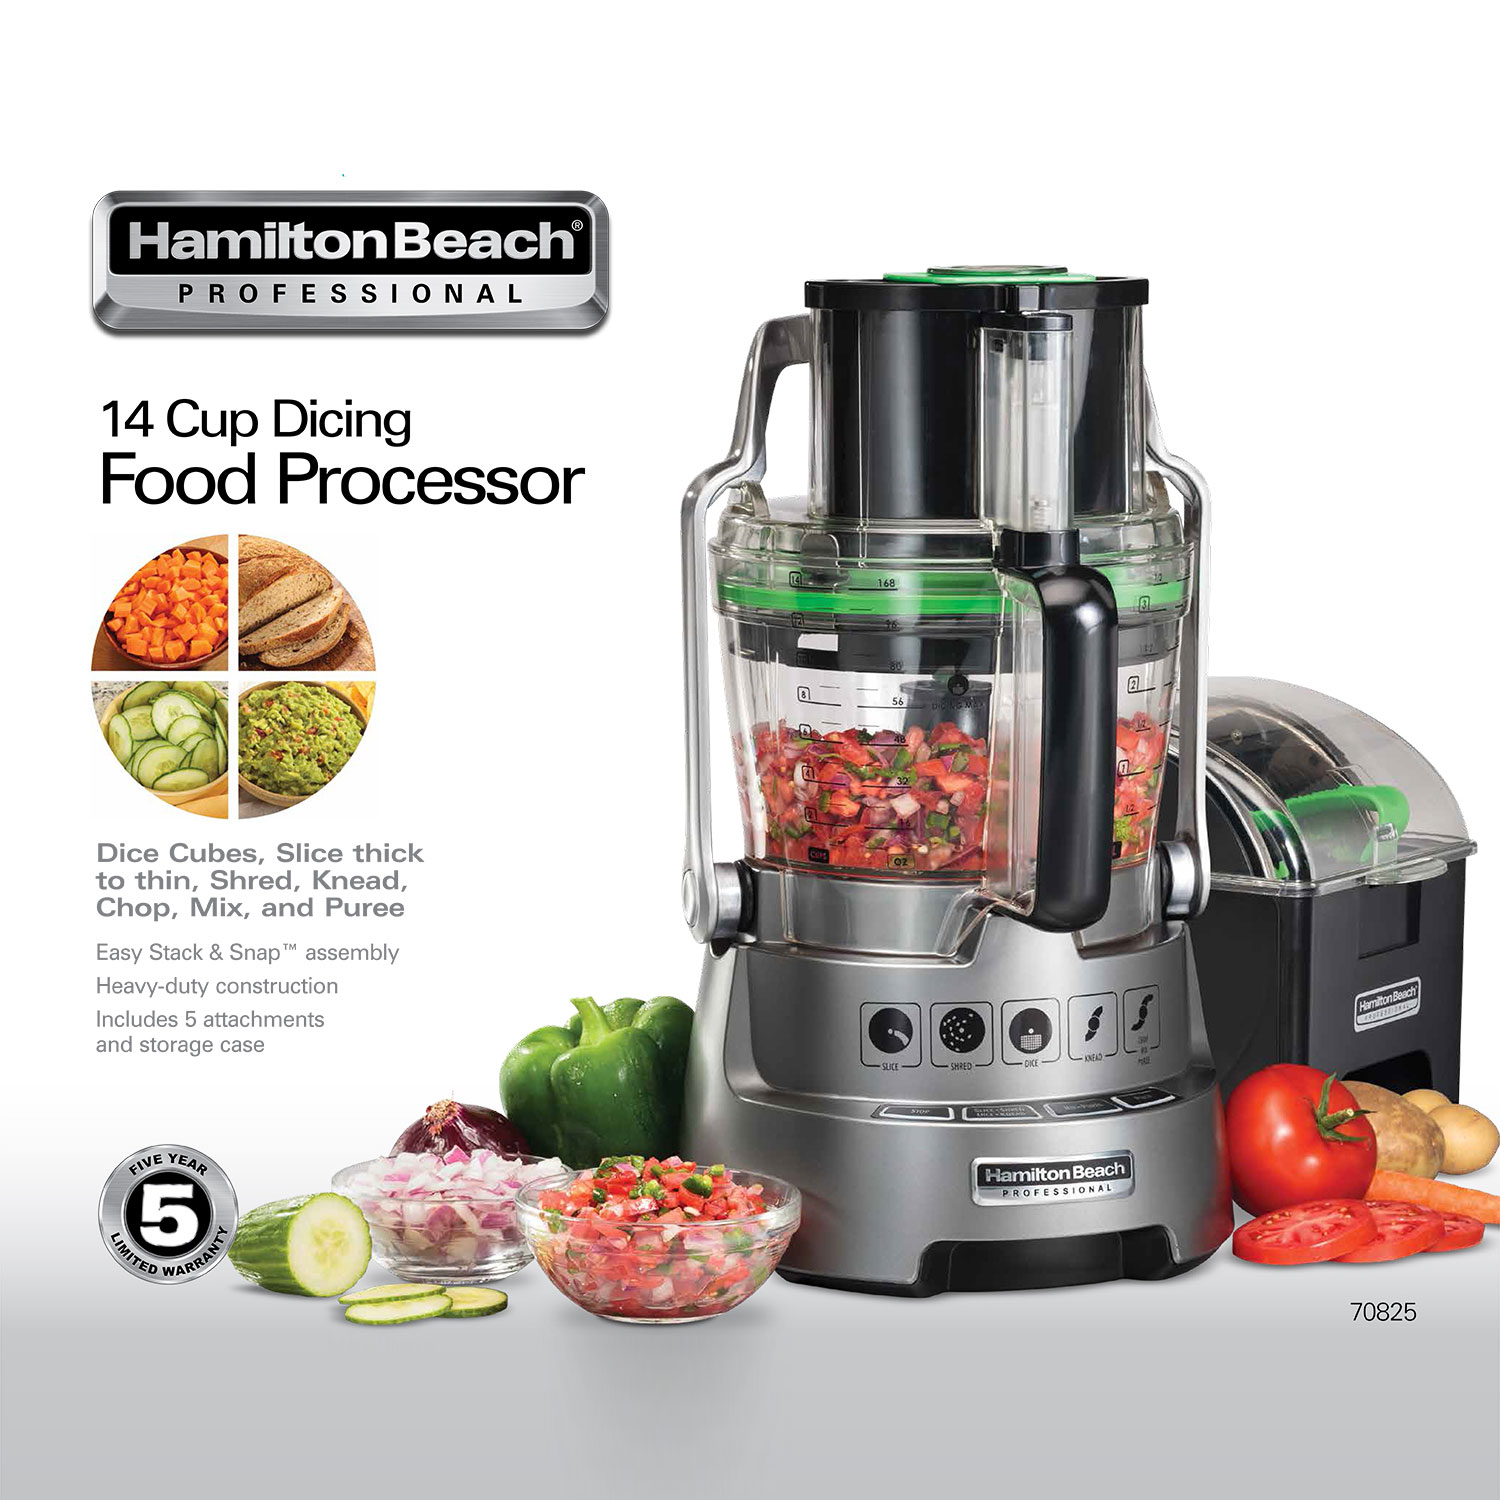 Hamilton Beach® Professional 14 Cup Dicing Food Processor (70825)